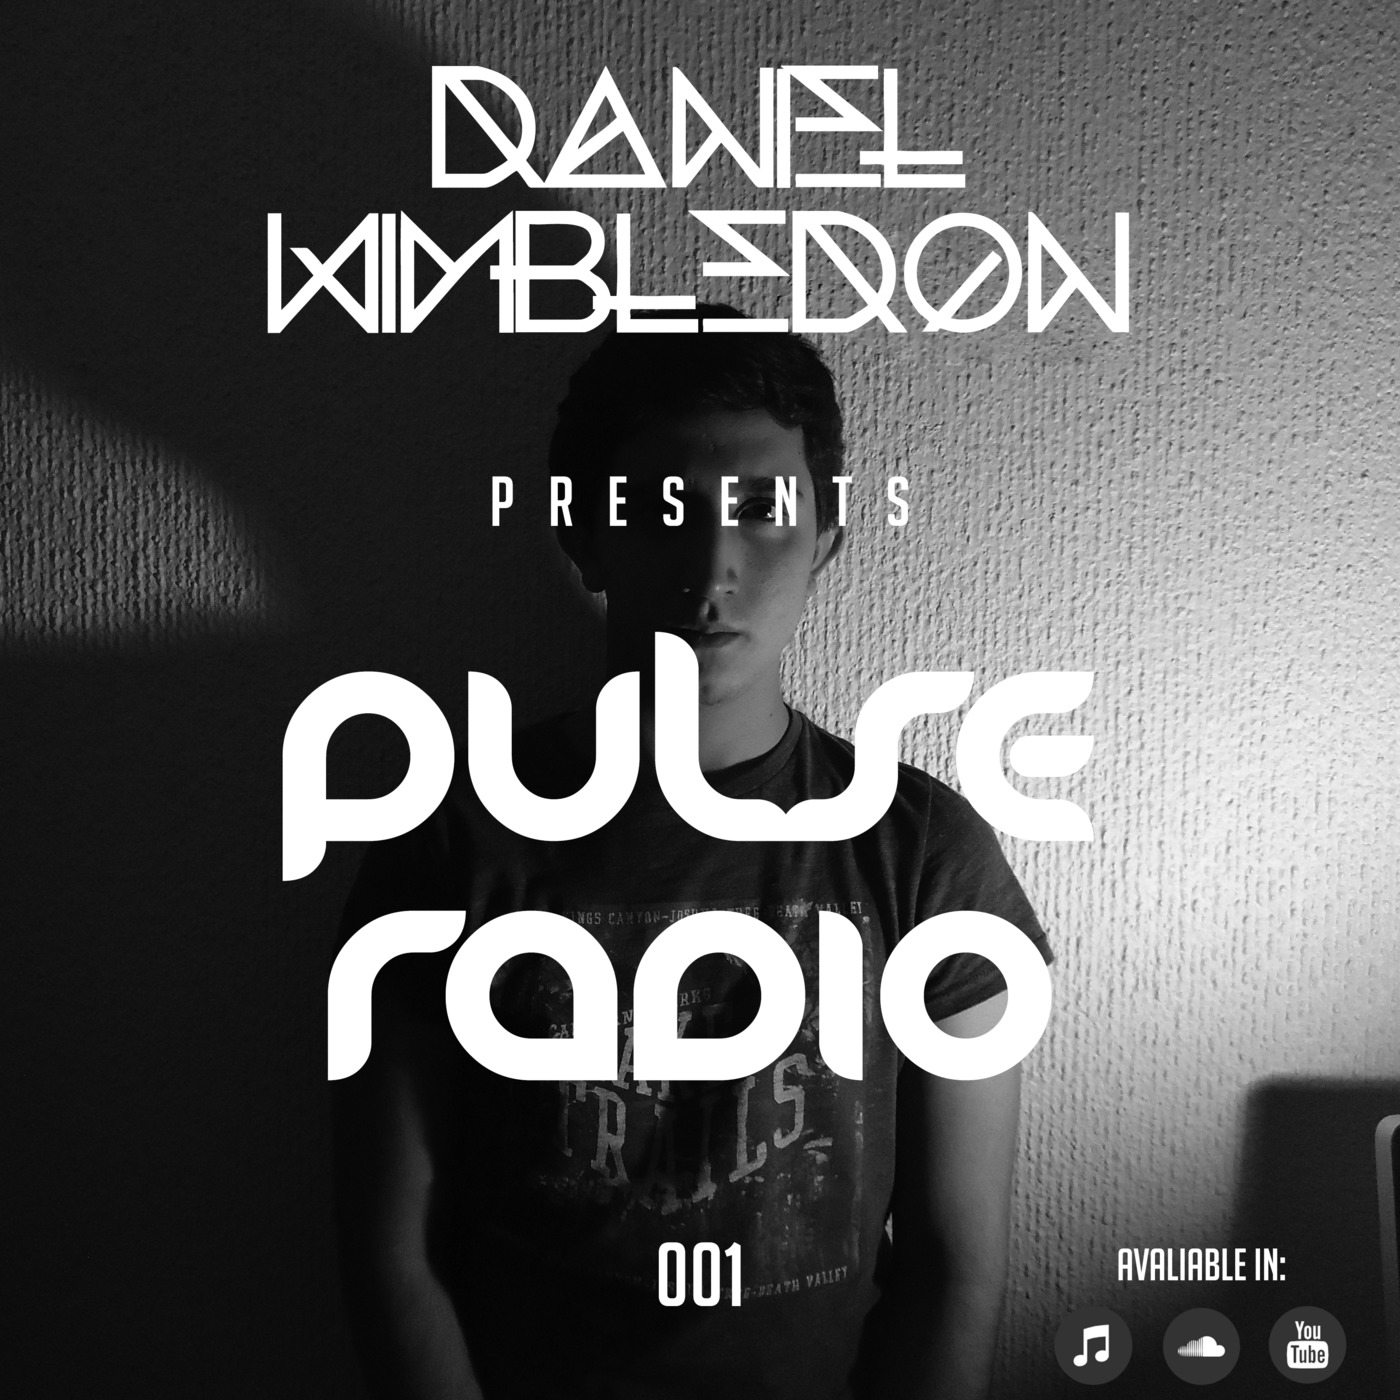 Daniel Wimbledon Presents: Pulse Radio